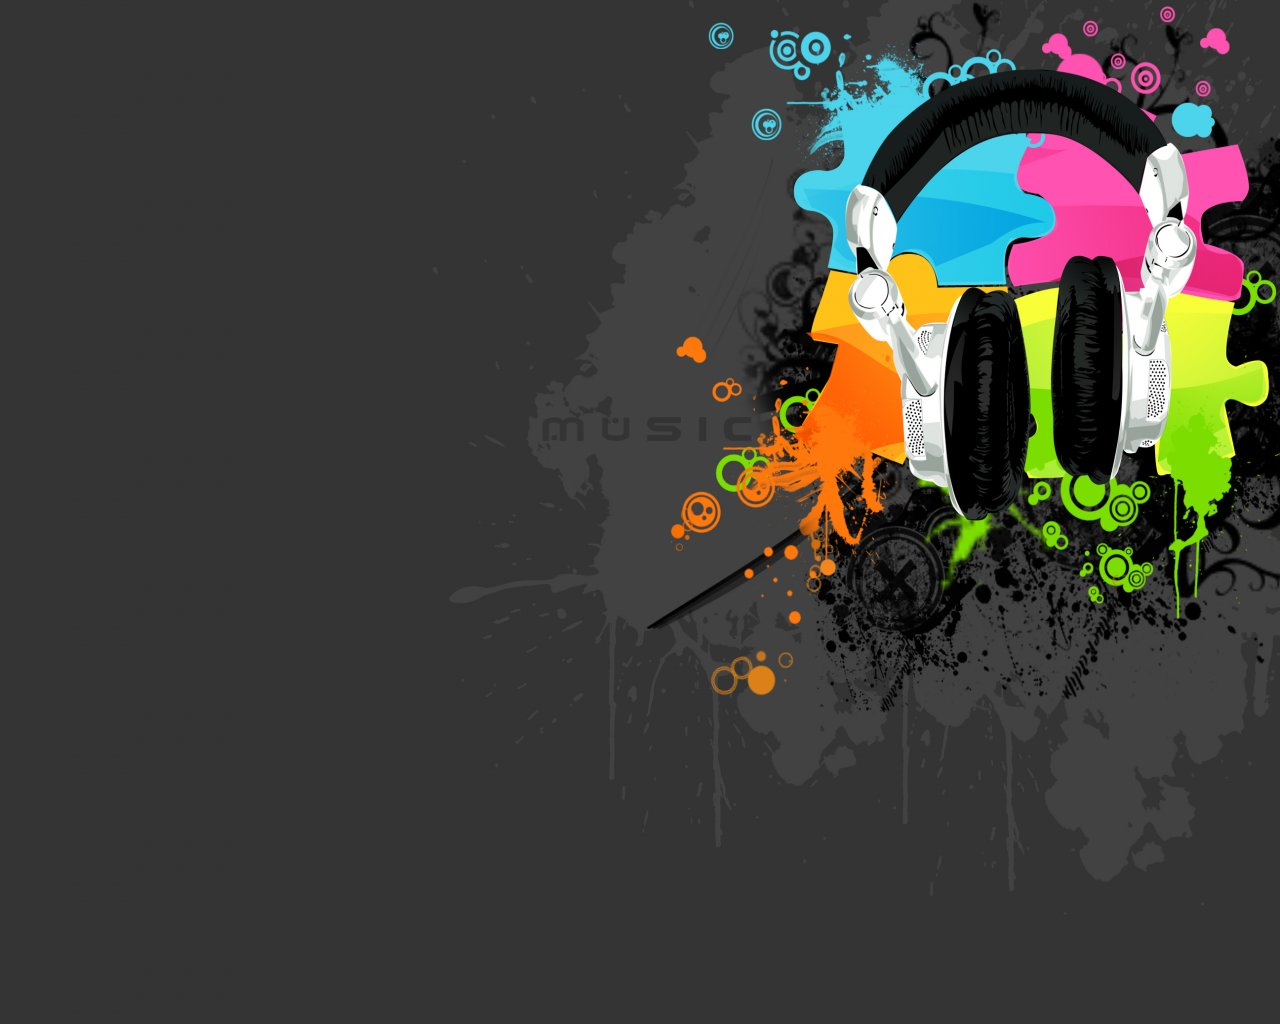 Wallpapers Hd 3d Music: Free 3D Wallpapers Download: Music Hd Wallpaper, Music